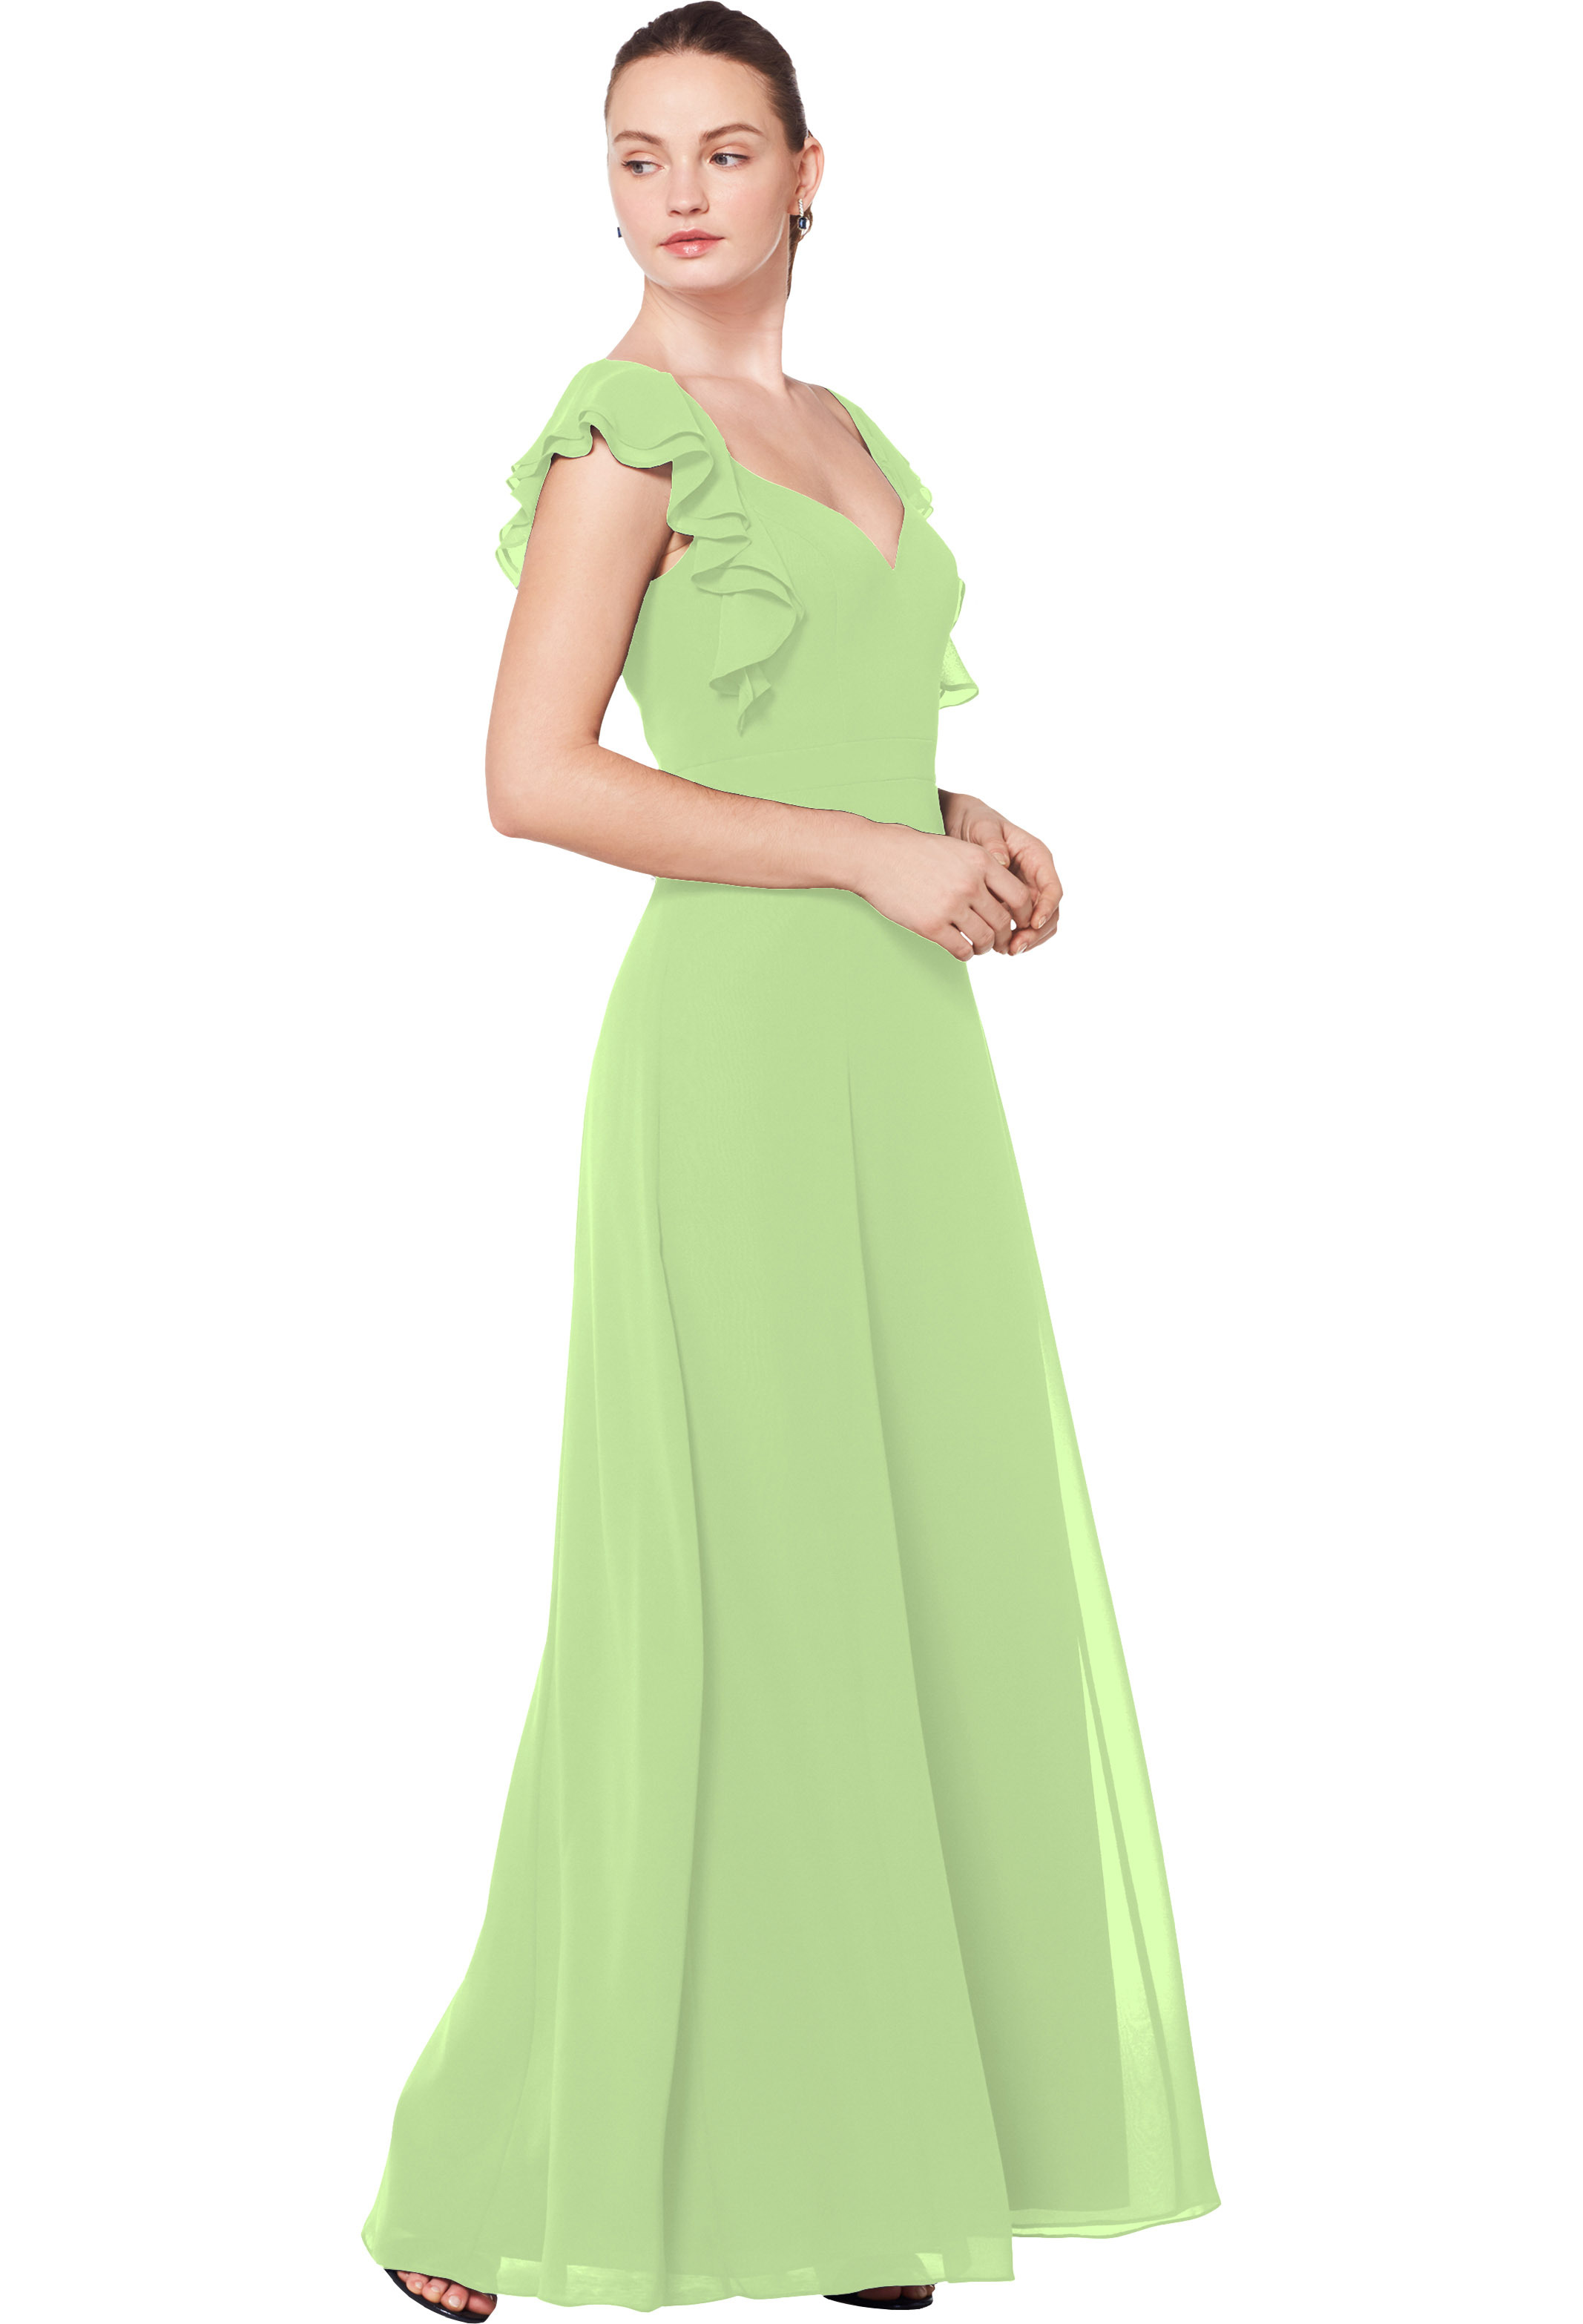 Bill Levkoff PISTACHIO Chiffon Sweetheart A-line gown, $210.00 Front